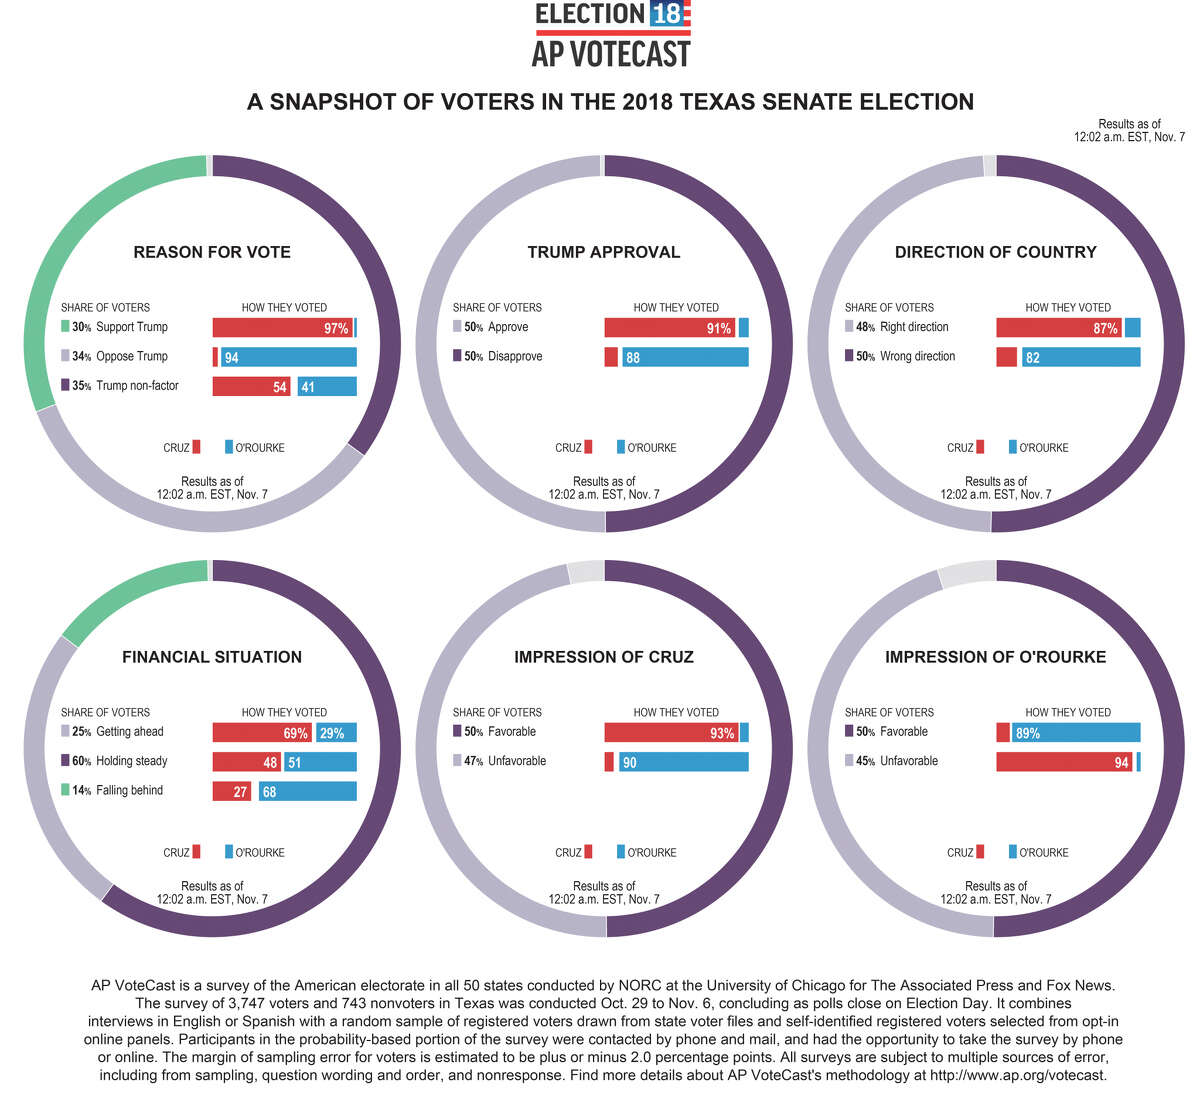 Exit polls data shows a snapshot of the Texas Senate race.